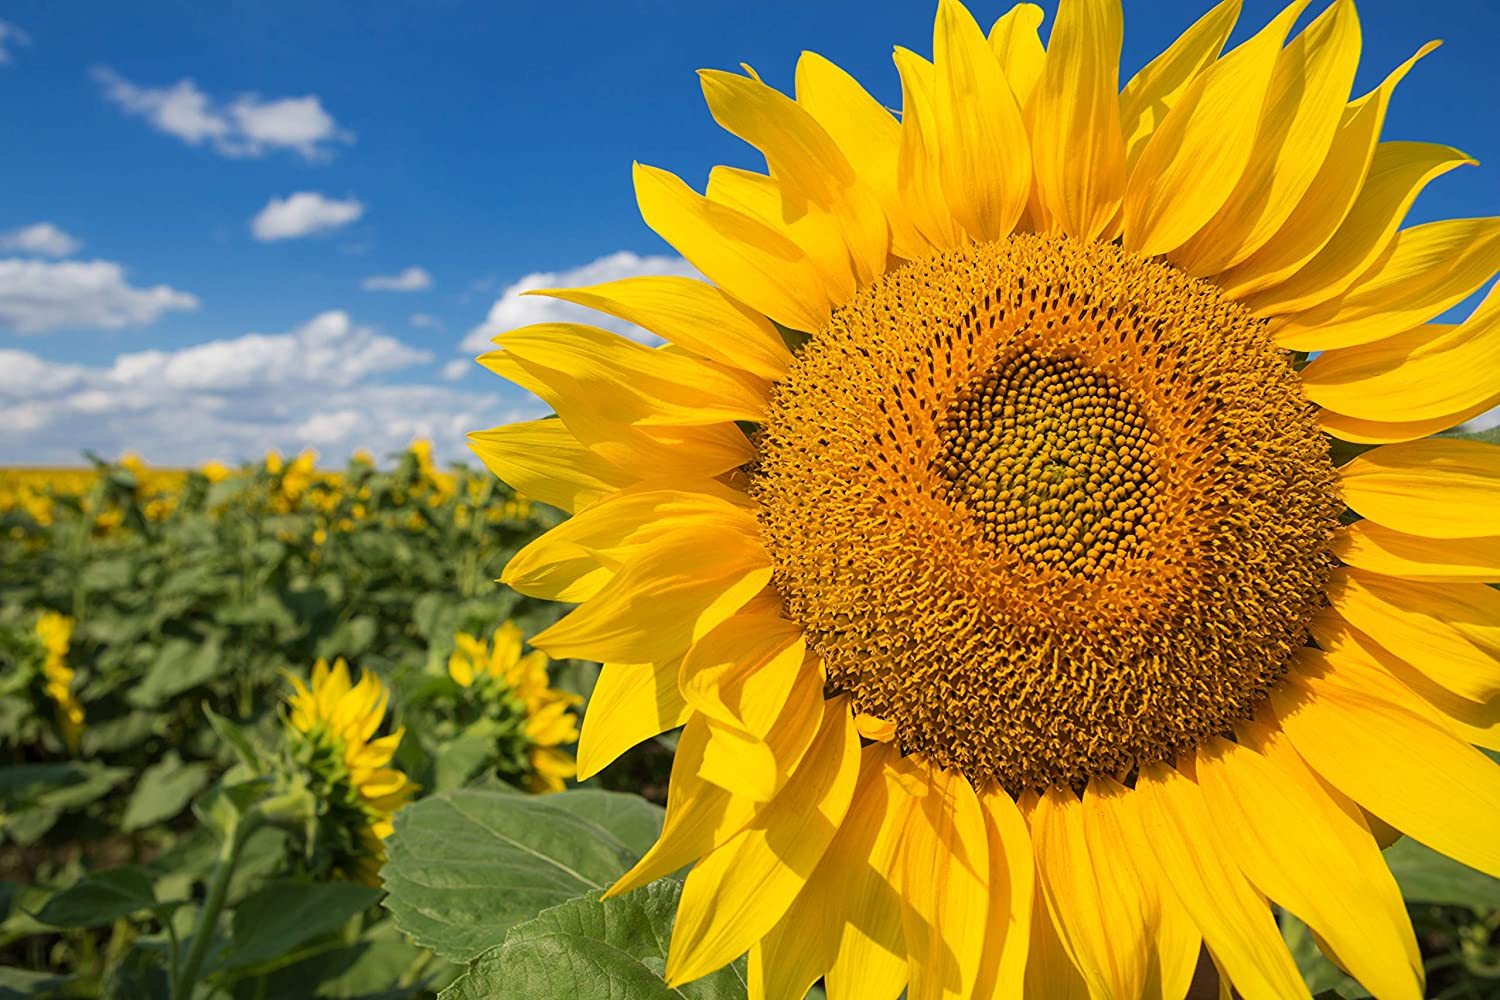 35 Fresh Sunflower Seeds Helianthus Giant BEST QYALITY NON-GMO